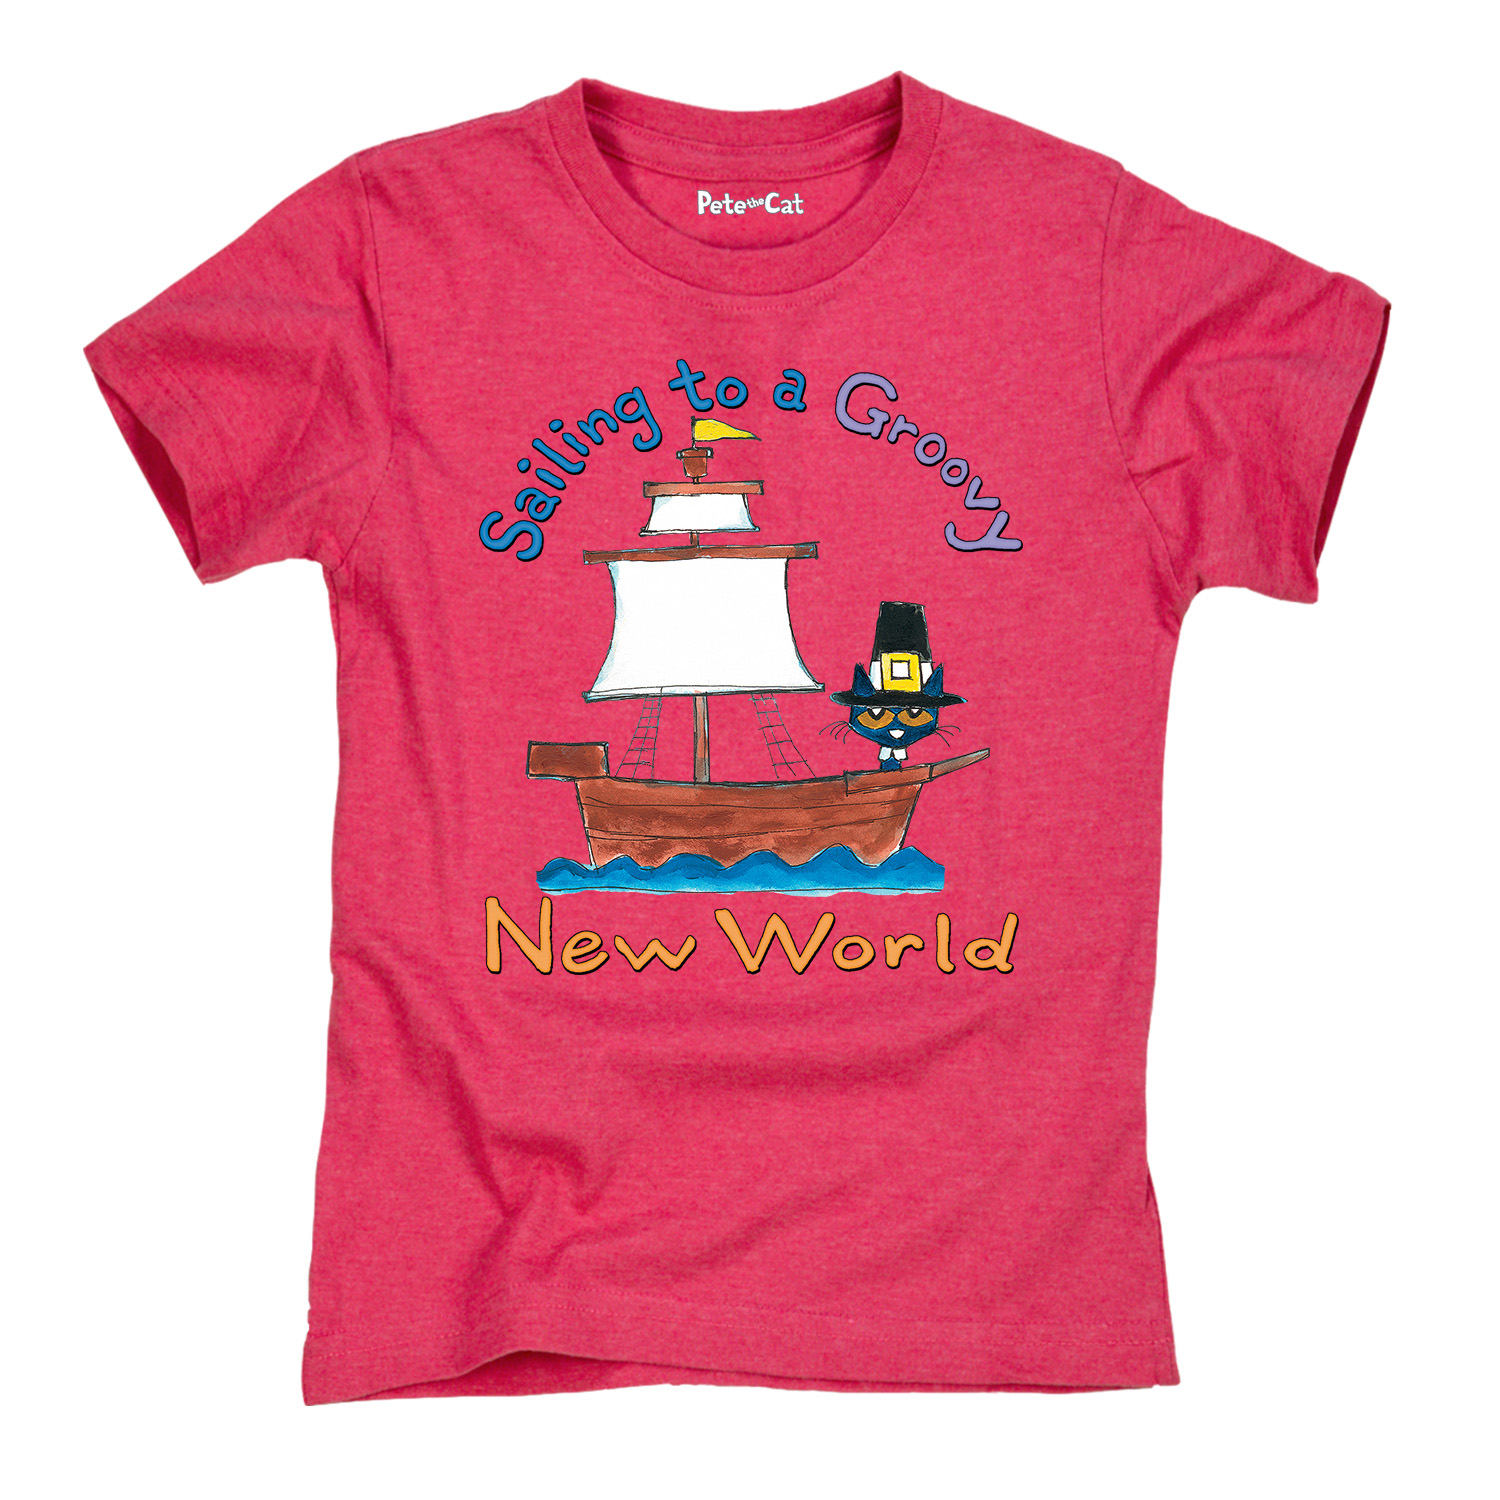 Pete the Cat Sailing to a Groovy New World TODDLER SHORT SLEEVE TEE